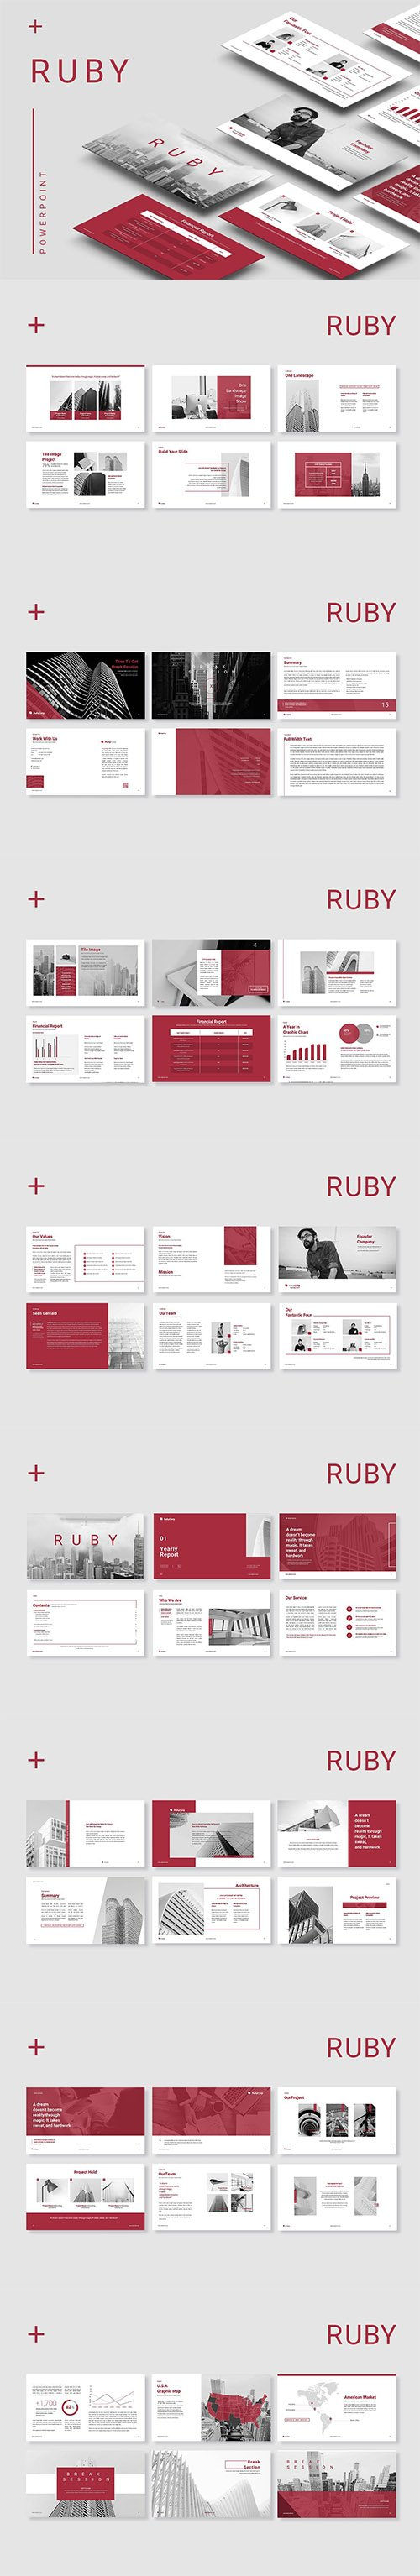 Ruby Powerpoint